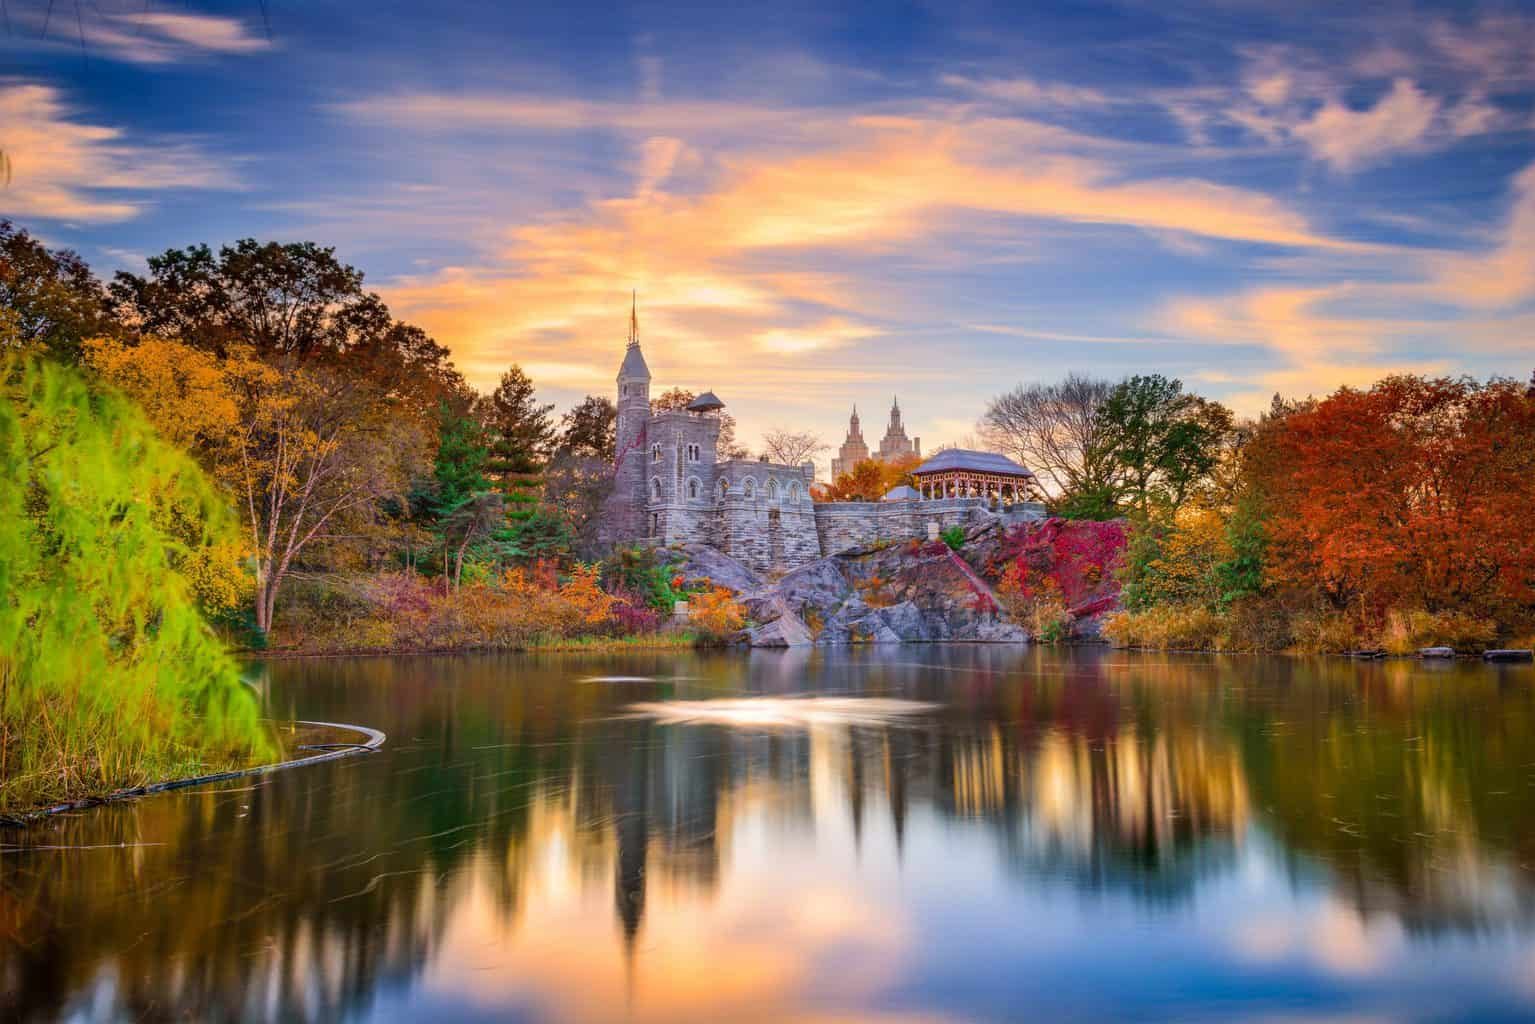 A stunning view of Belvedere Castle in Central Park.